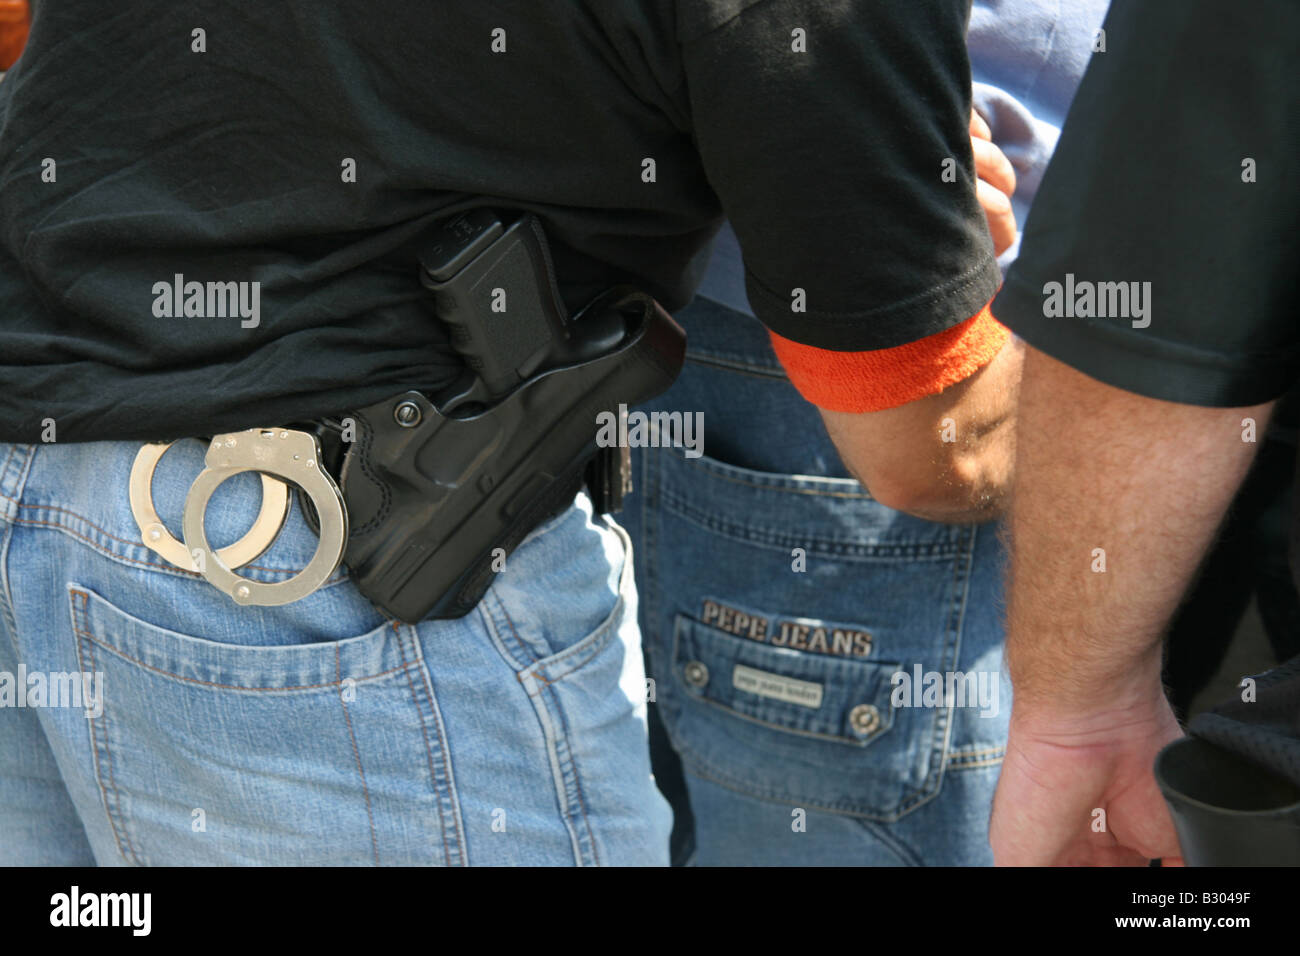 Plain Clothes police detectives in New York City search a suspect - Stock Image